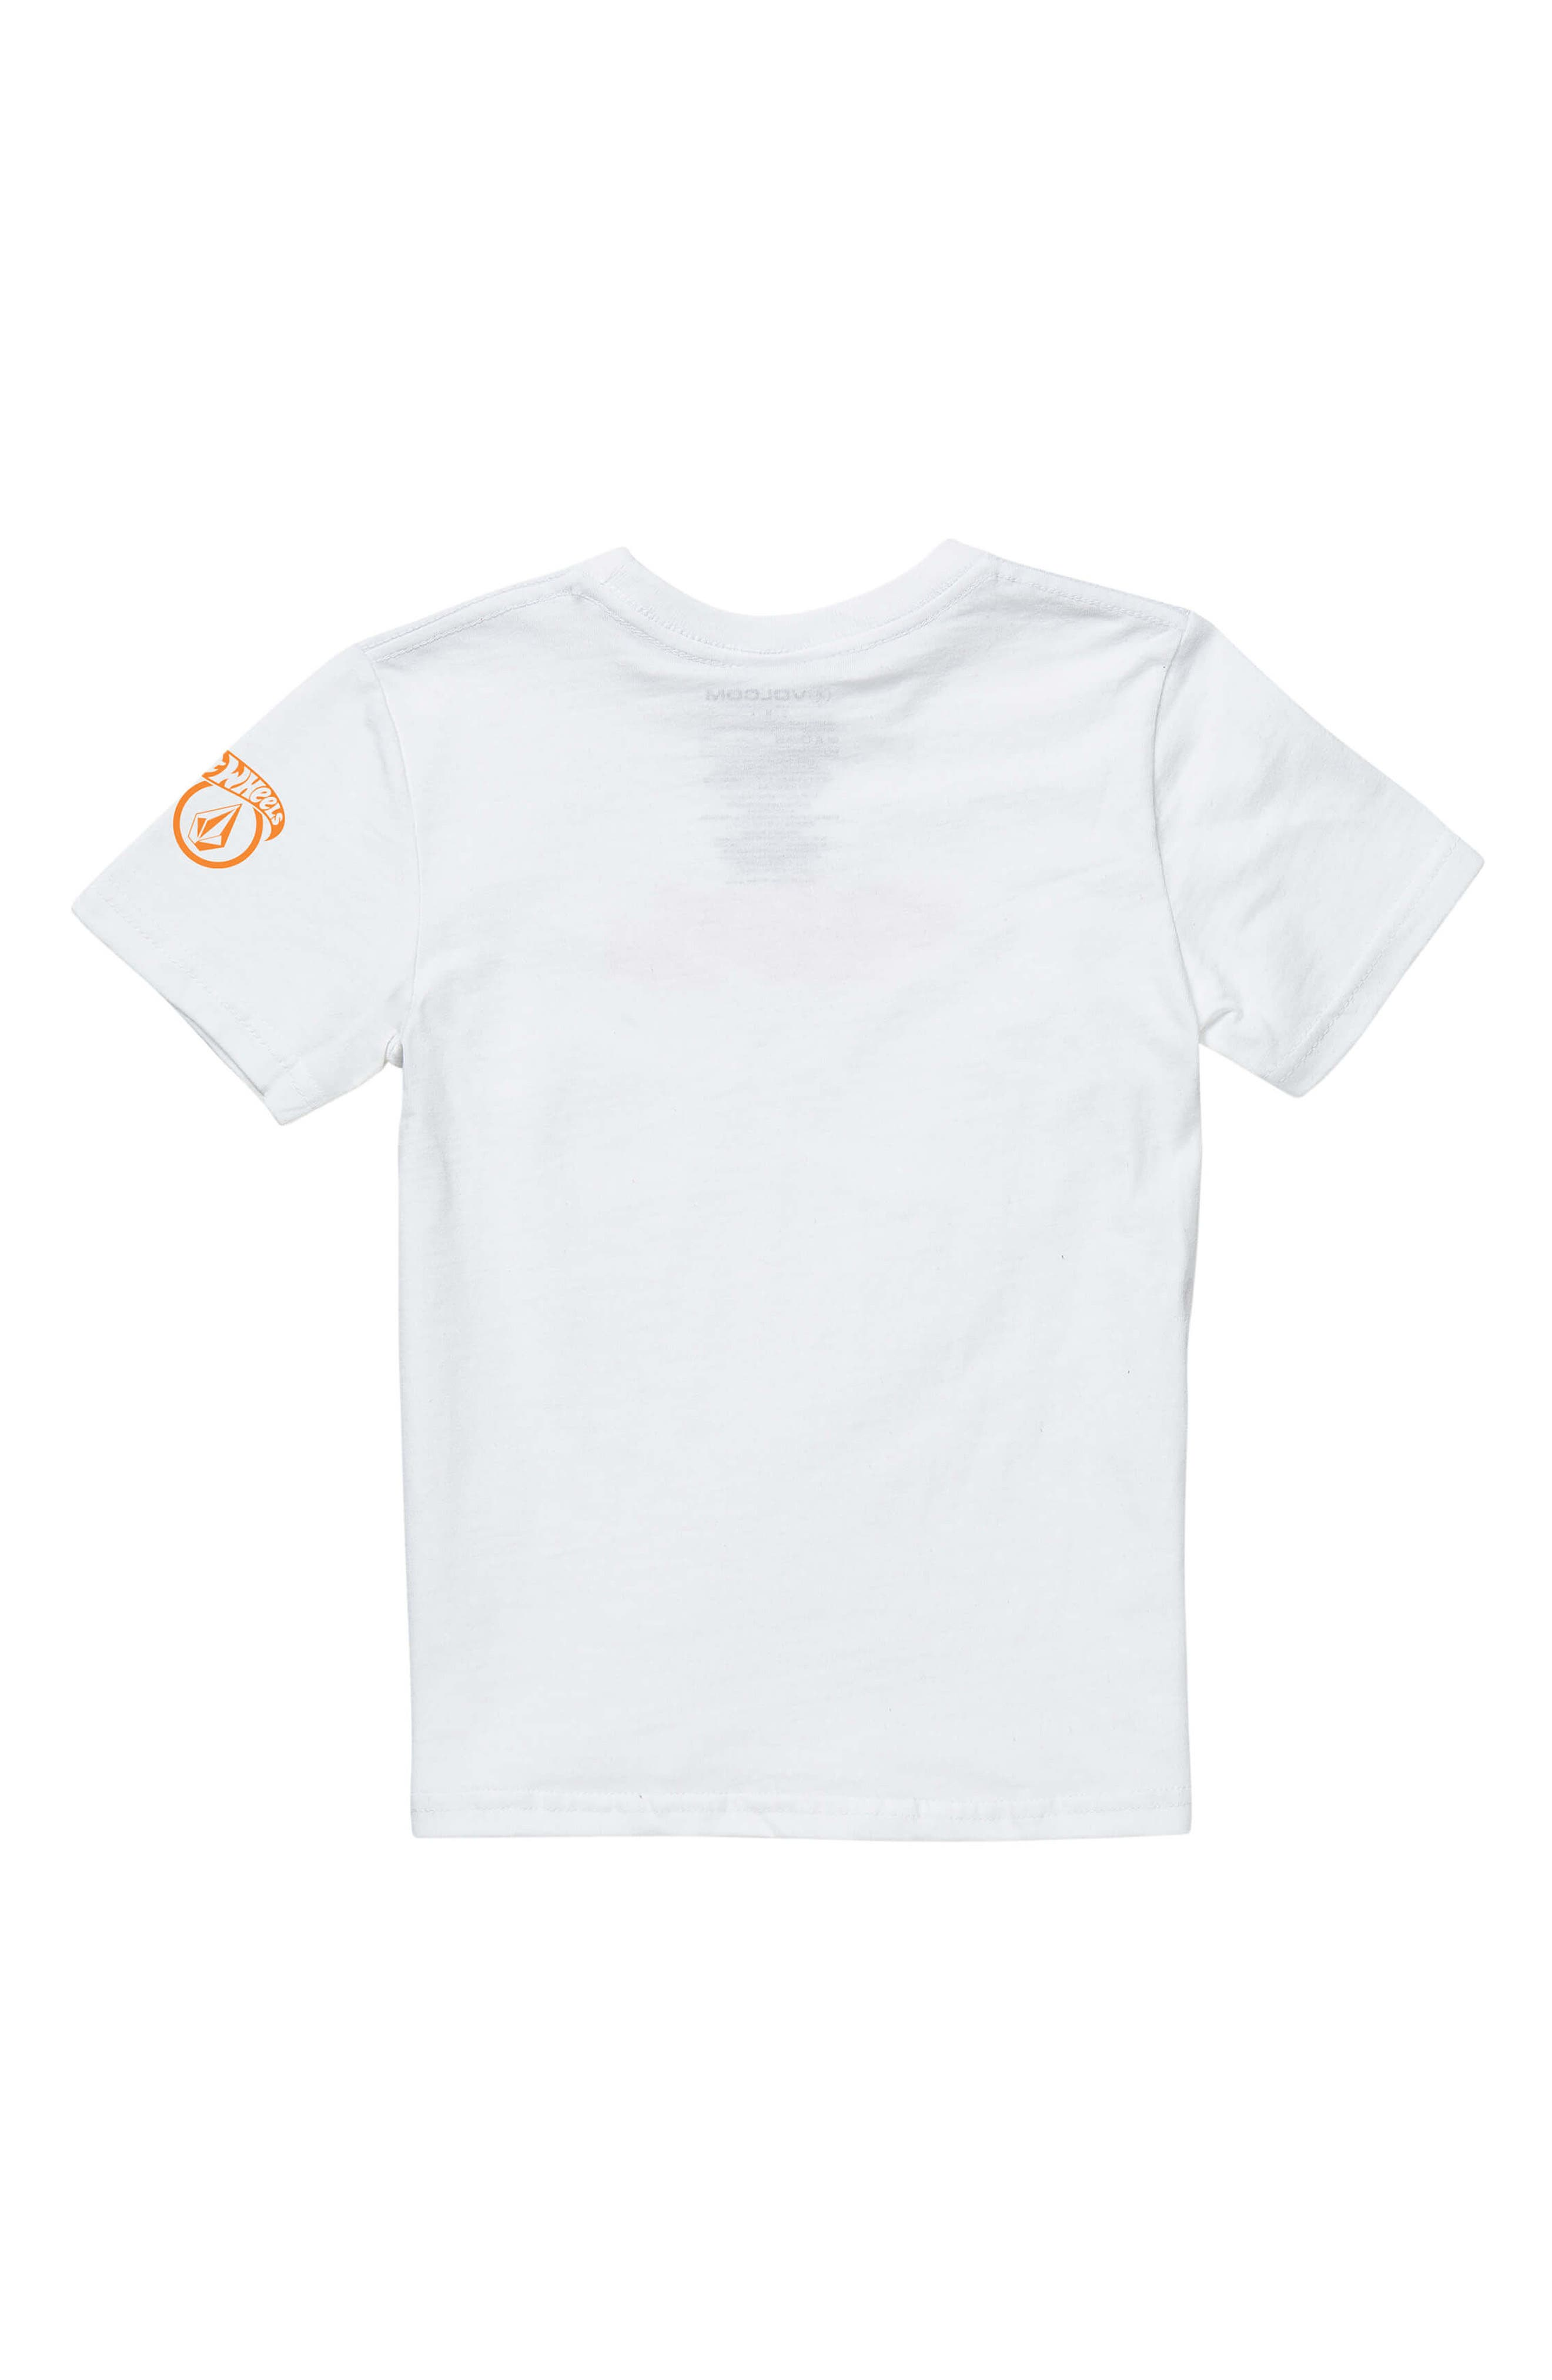 x Hot Wheels<sup>®</sup> Pile Up Pocket T-Shirt,                             Alternate thumbnail 2, color,                             100